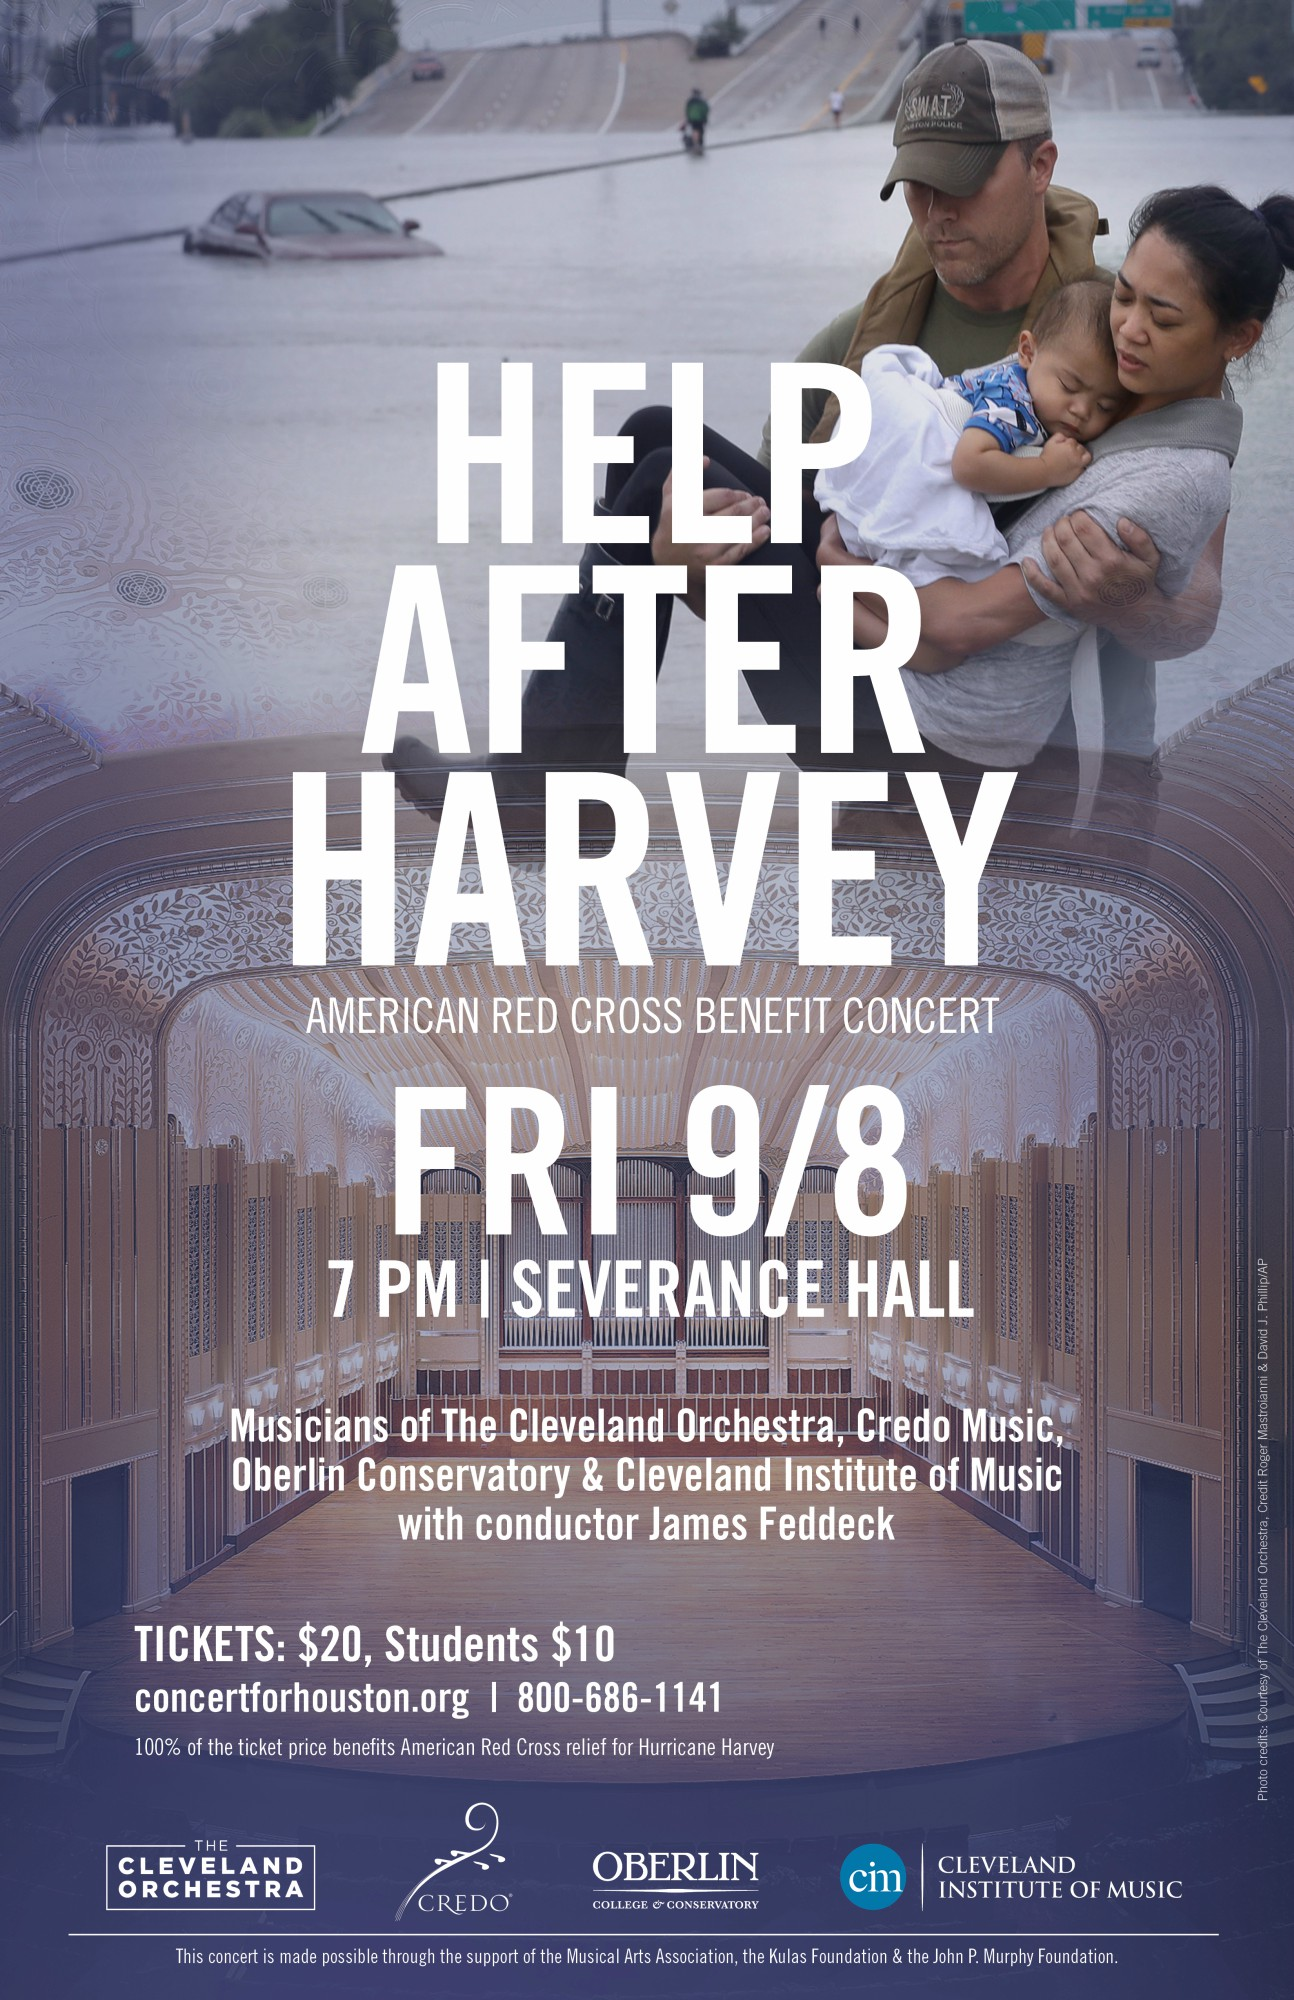 HelpAfterHarvey_Sept8_Severance